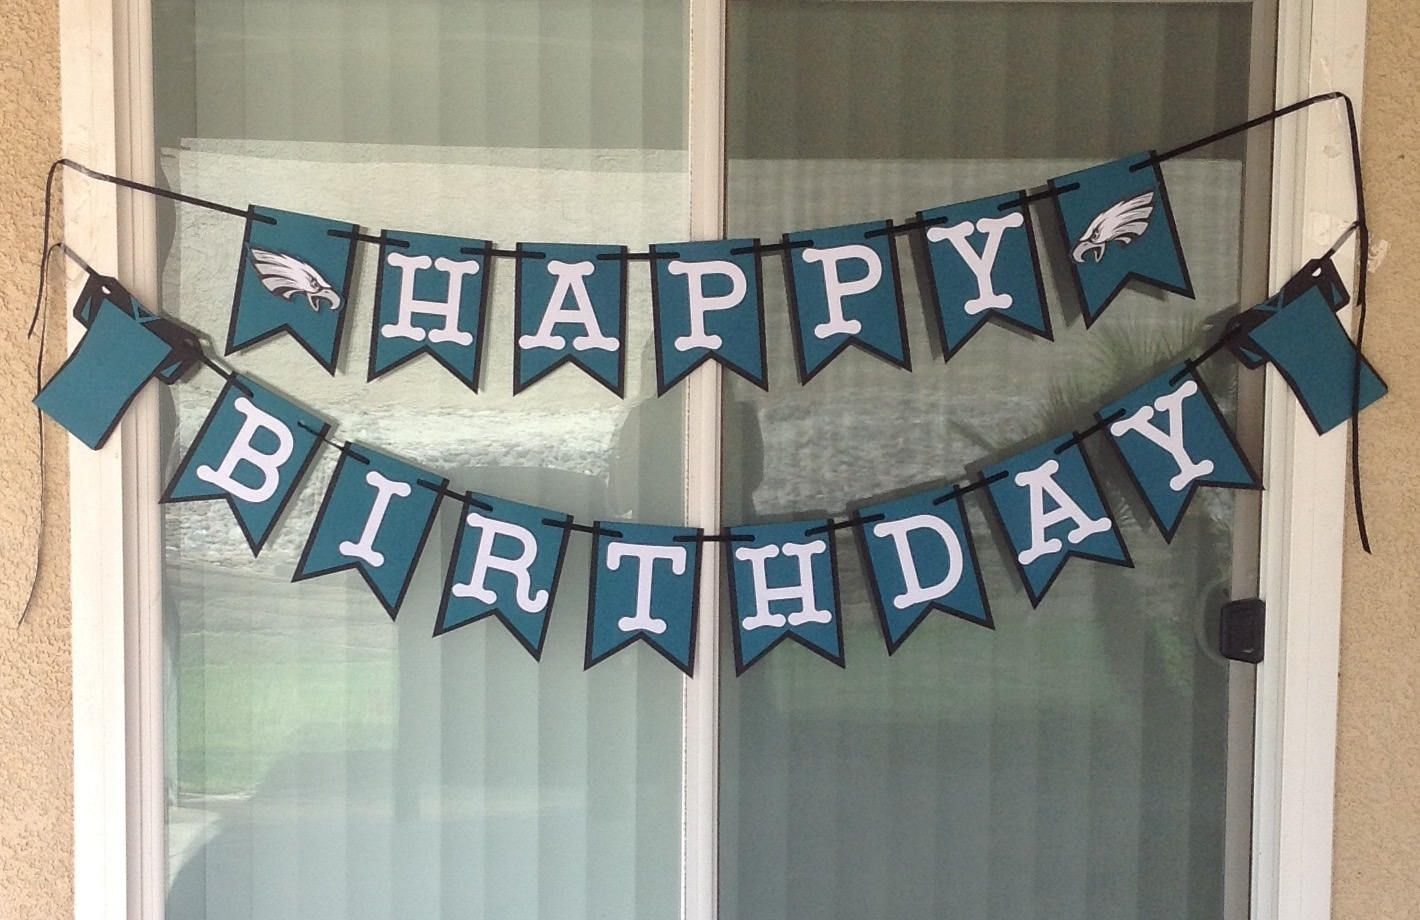 Philadelphia Eagles Birthday Banner inspired Anniversary Baby Shower Party  Decorations Matching Topper   Confetti Teal Black Handmade New by  SportsNutz on ... 3d3da9f91